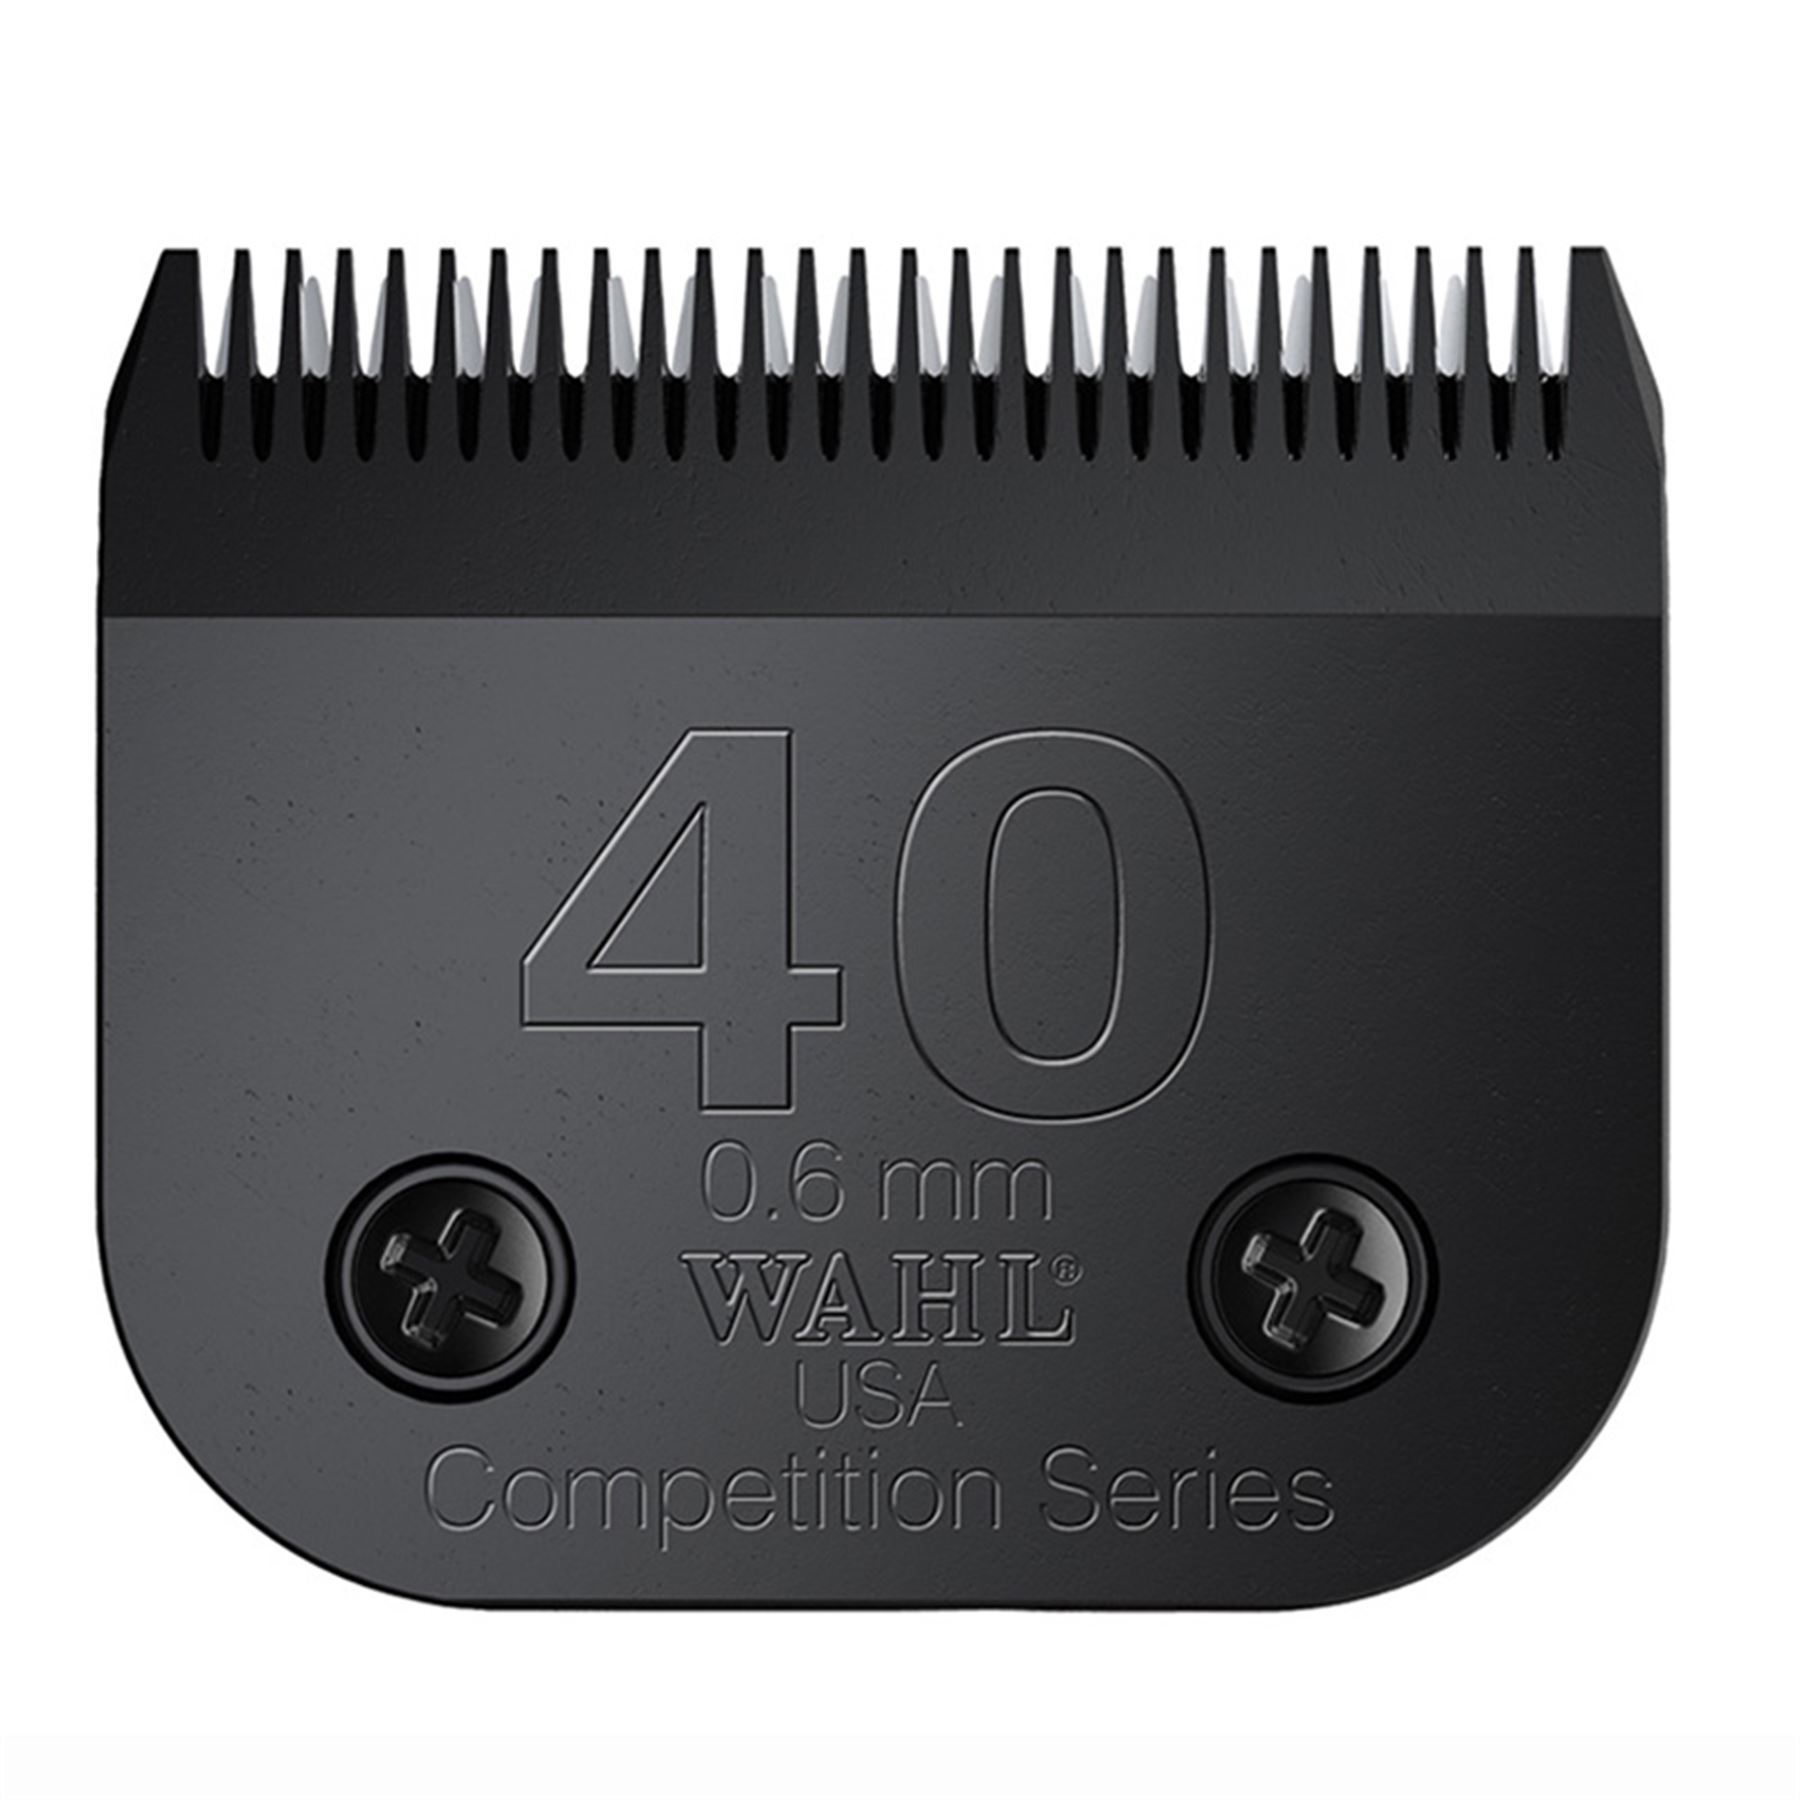 Wahl Ultimate Competition #40 Blade